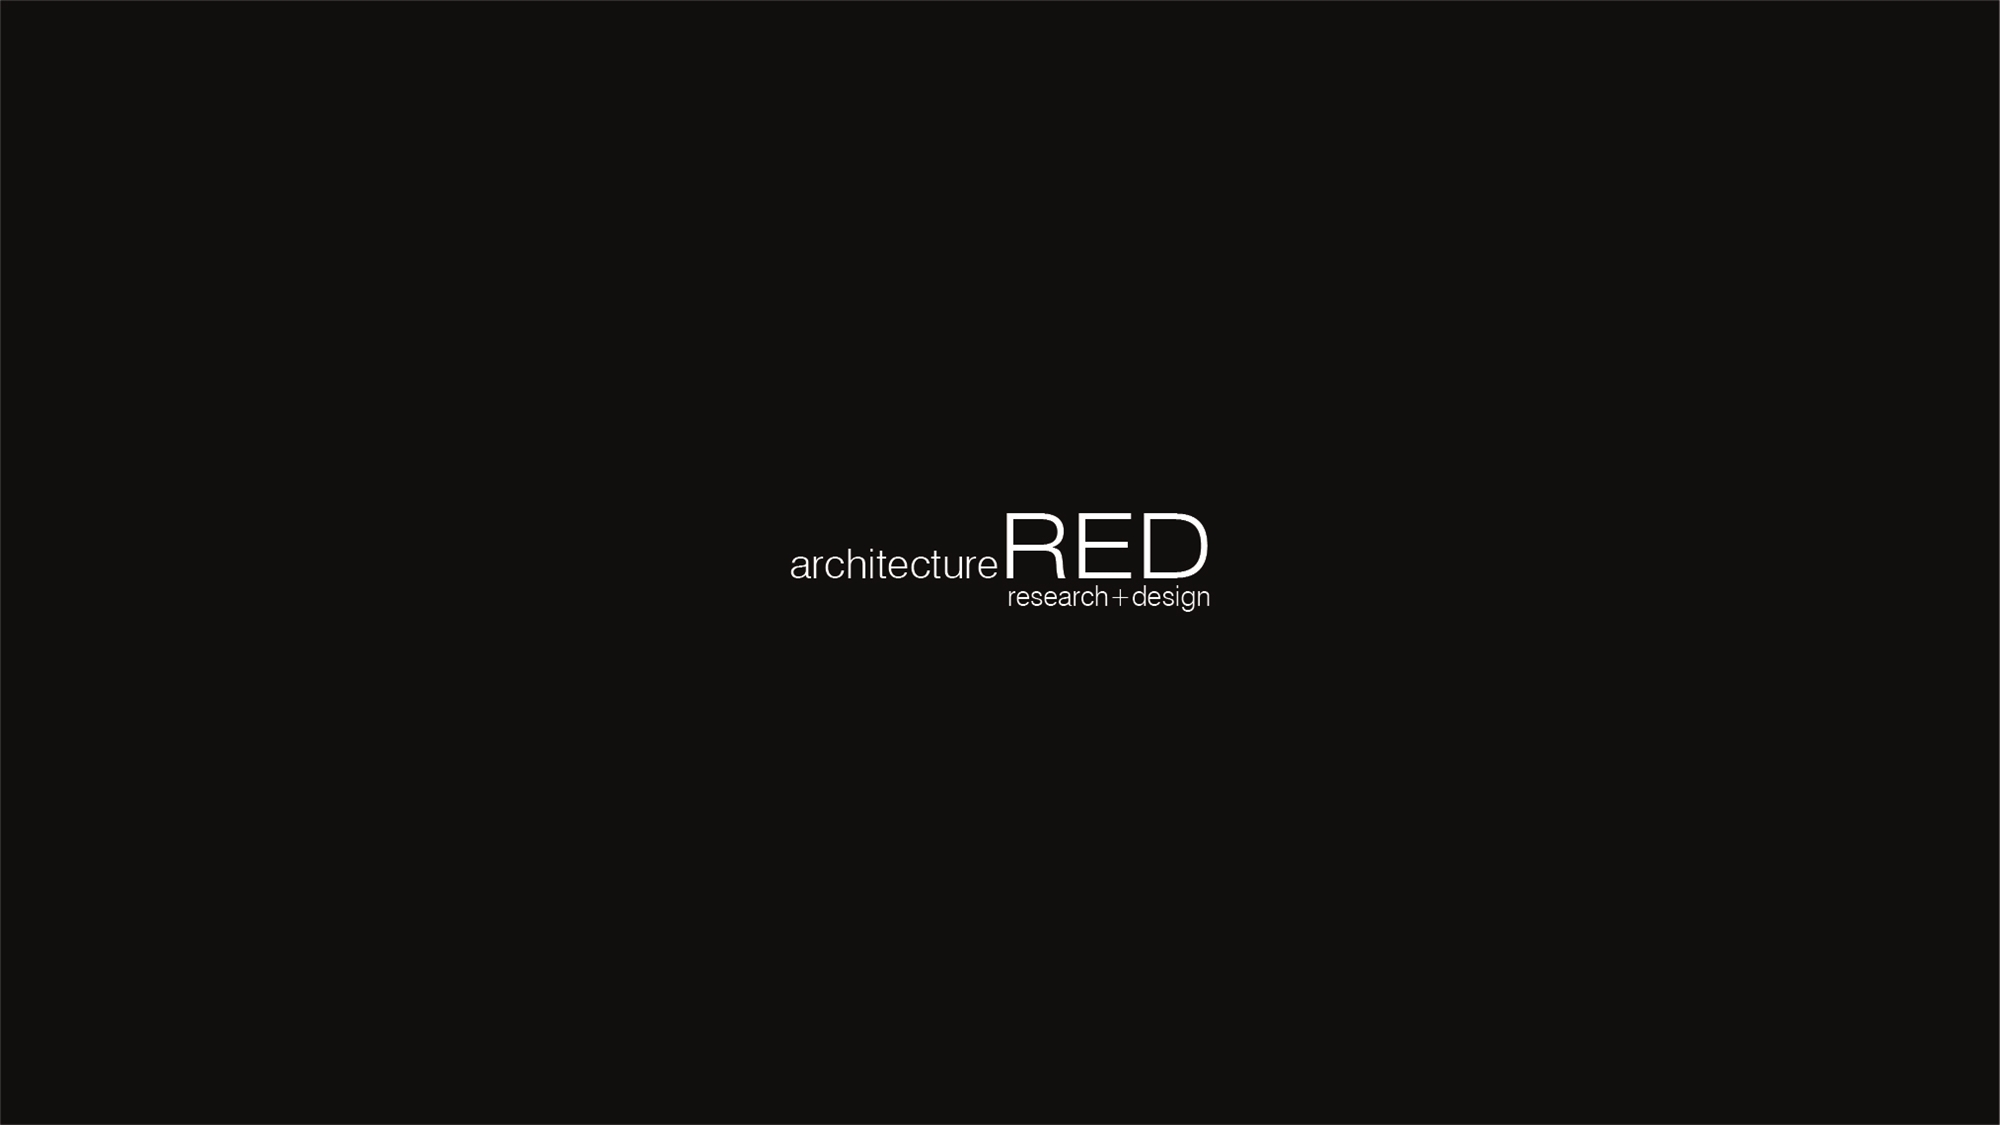 aRED 01